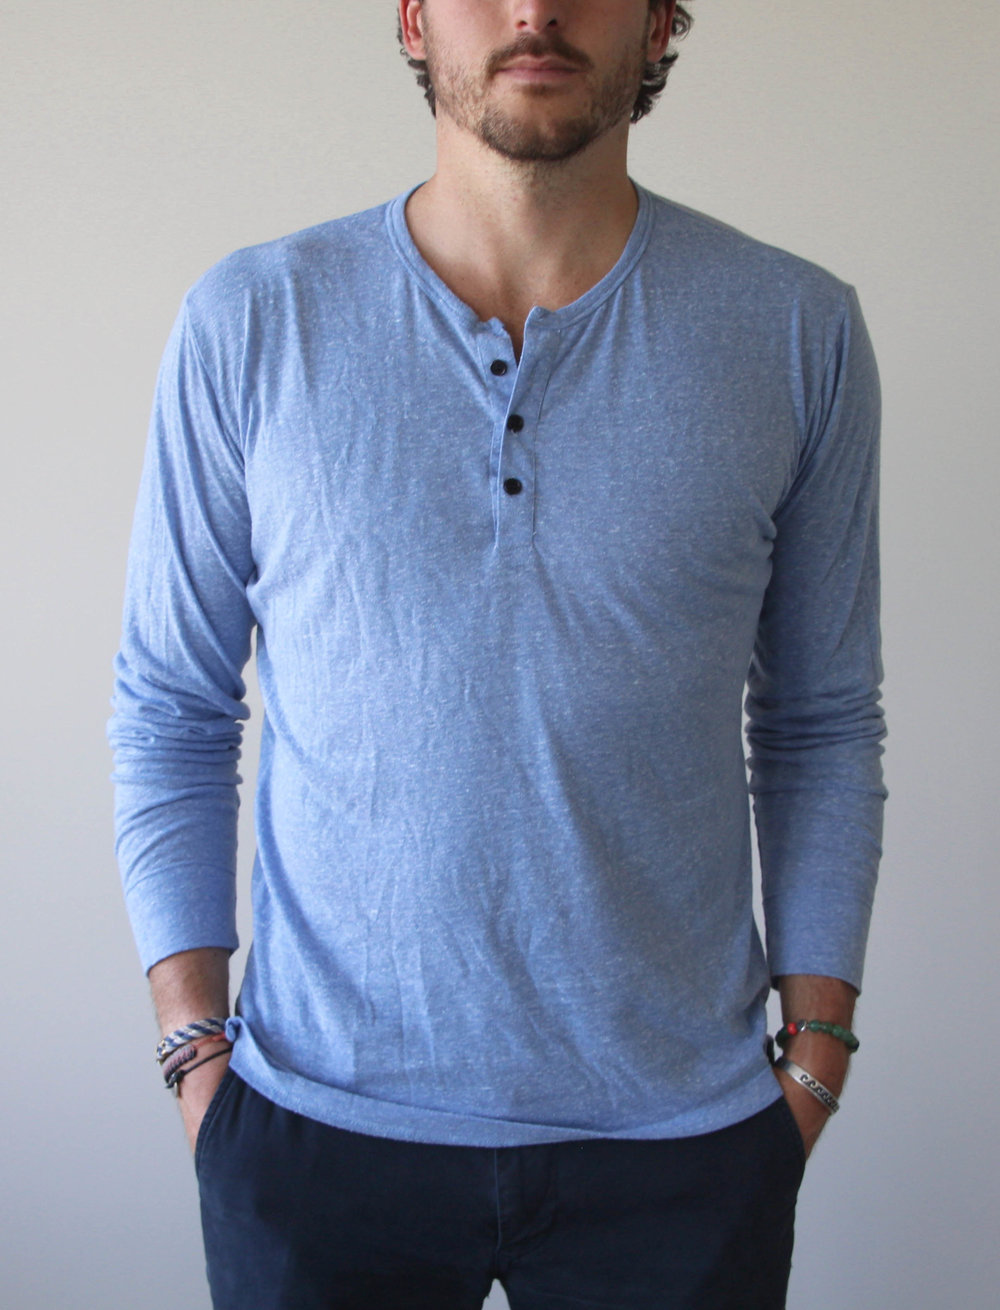 Spring & Summer '17  - Light Blue Tri Blend Henley $11050% Polyester / 25% Rayon / 25% Cotton